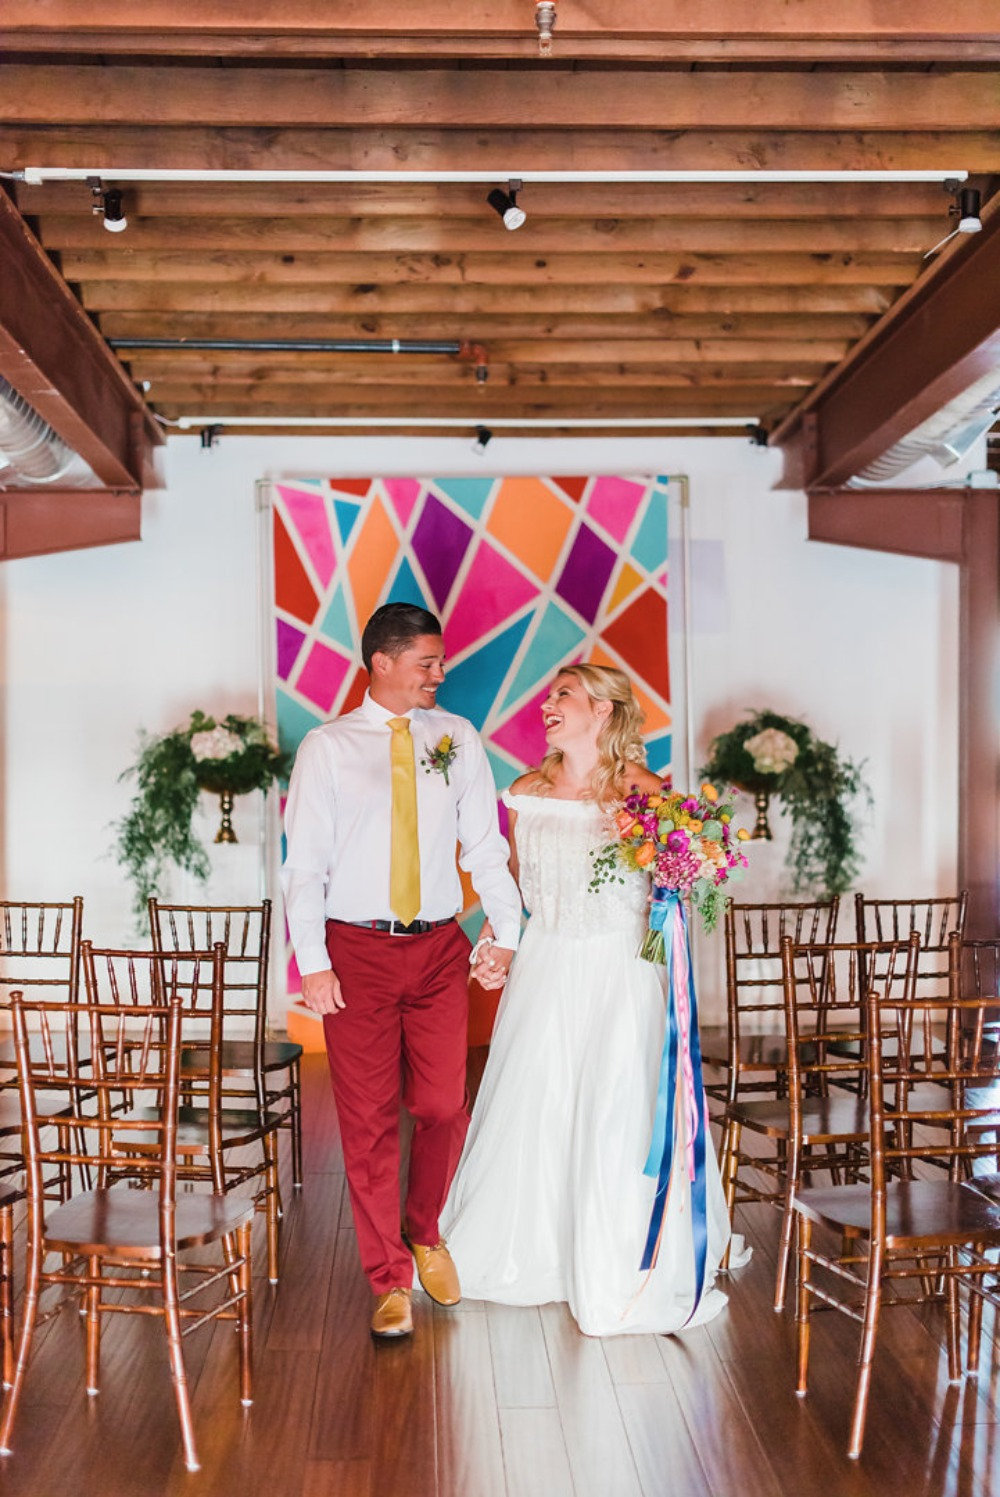 Colorful ceremony ideas